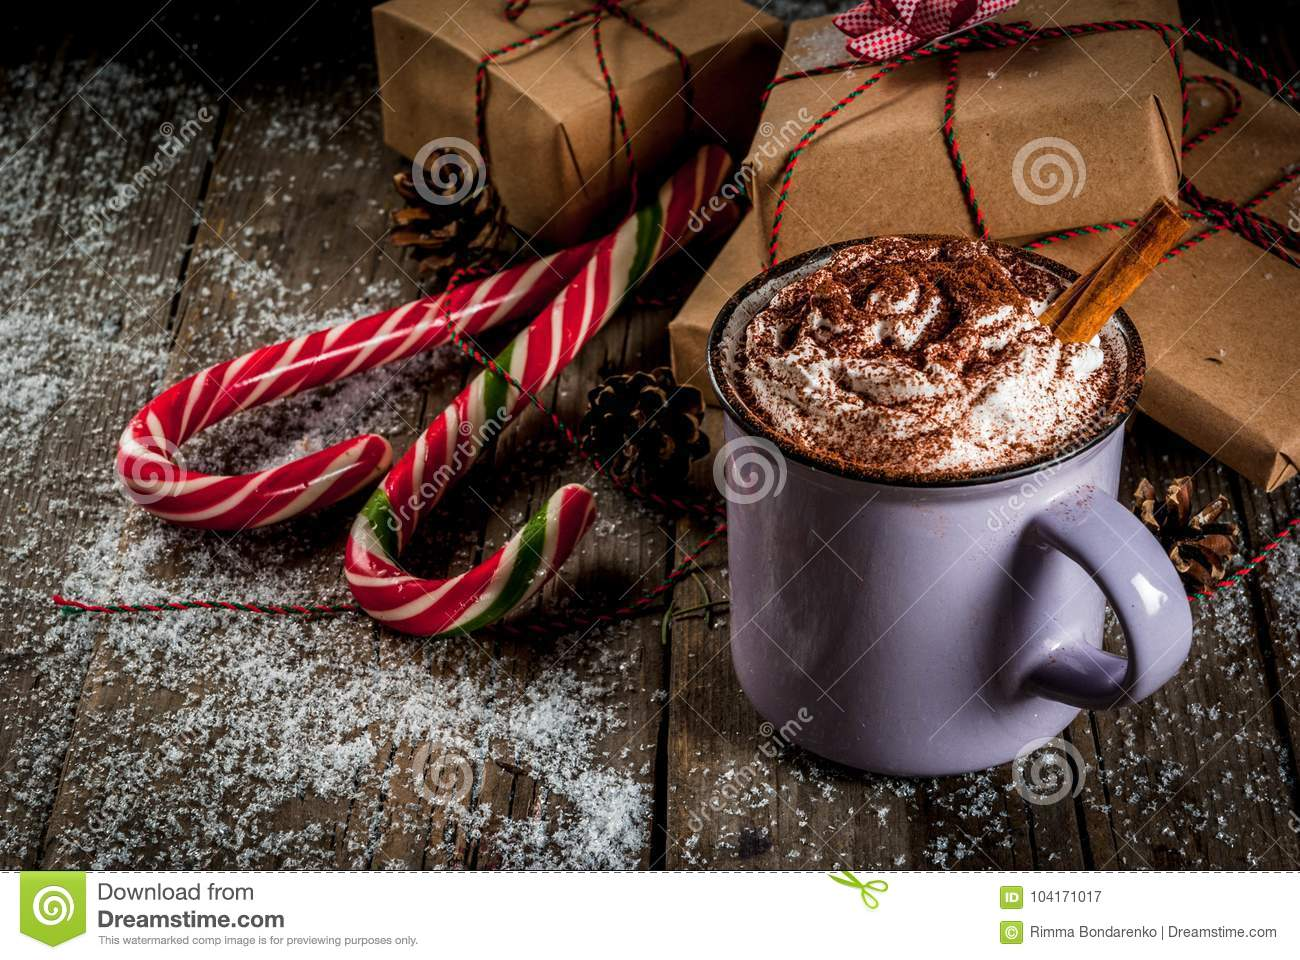 Hot Chocolate And Christmas Gifts Stock Image - Image of gifts ...